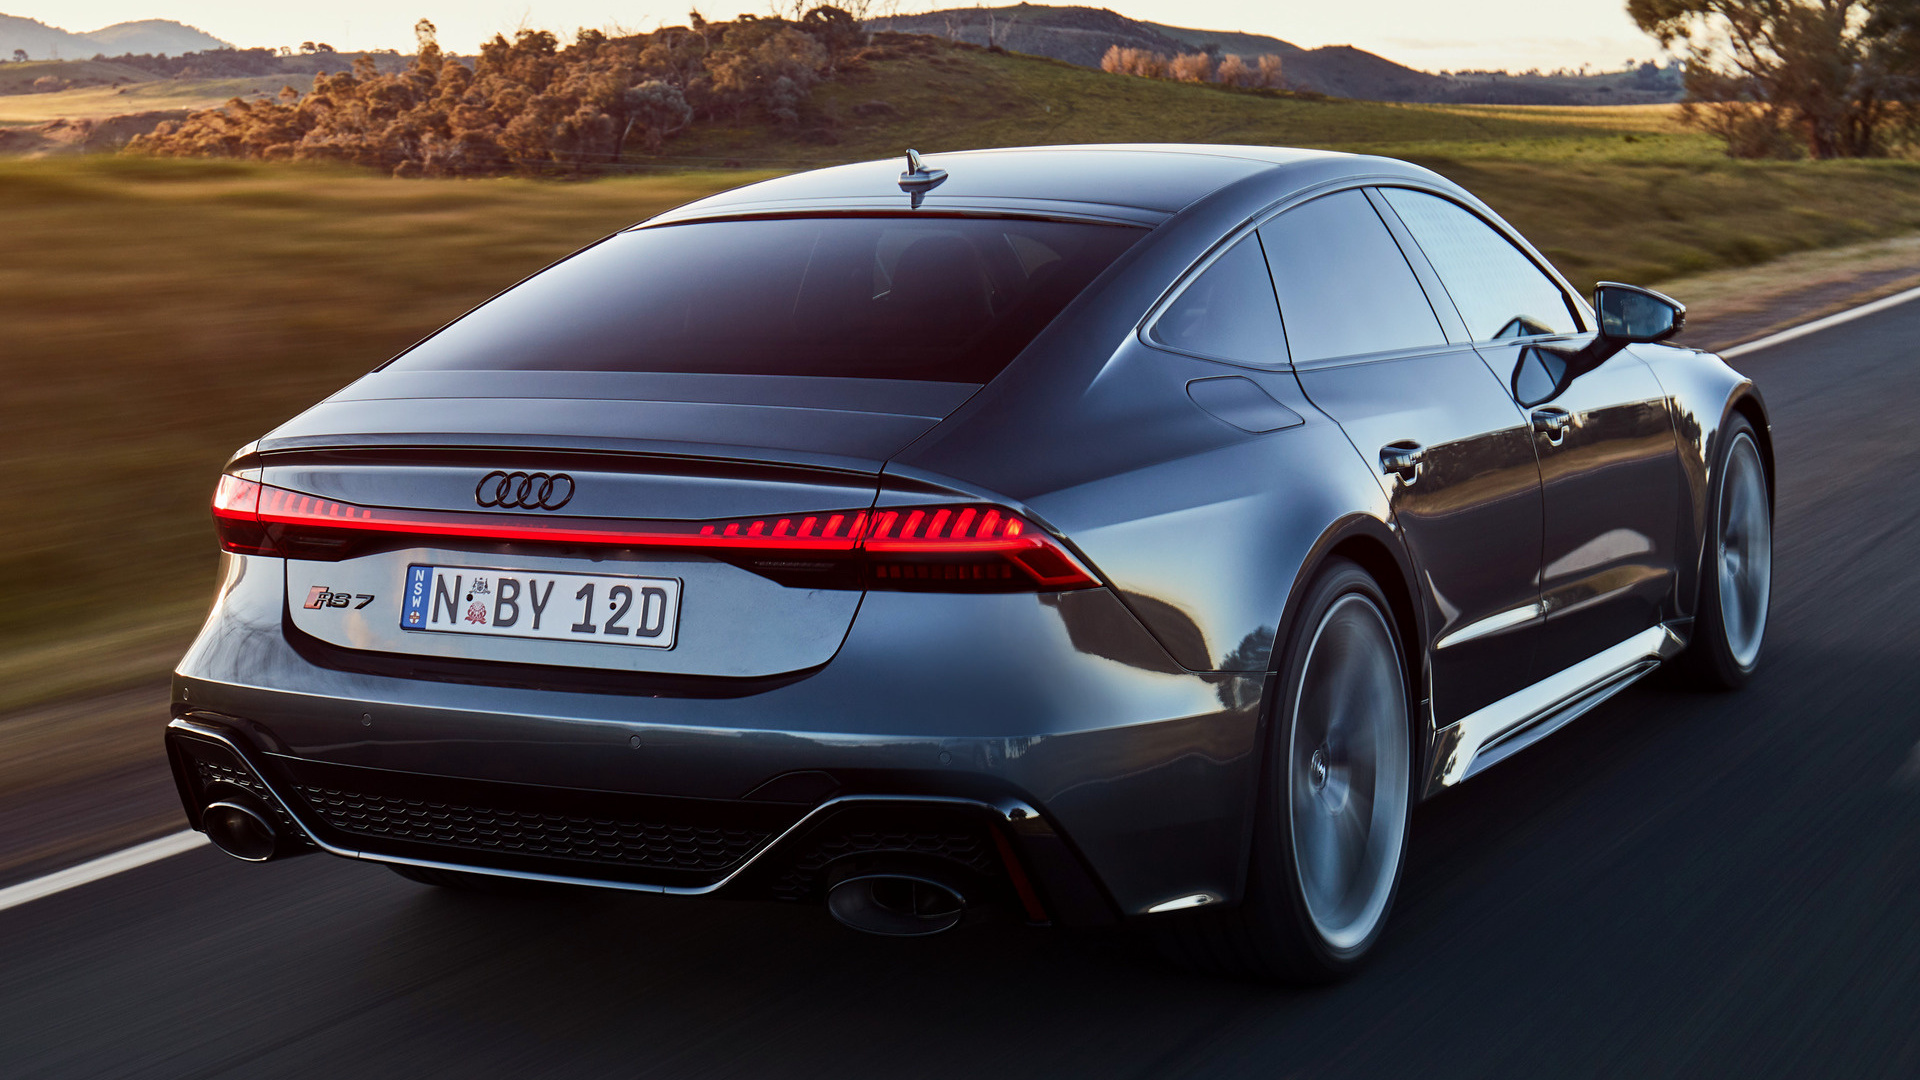 2020 Audi Rs 7 Sportback Au Wallpapers And Hd Images Car Pixel